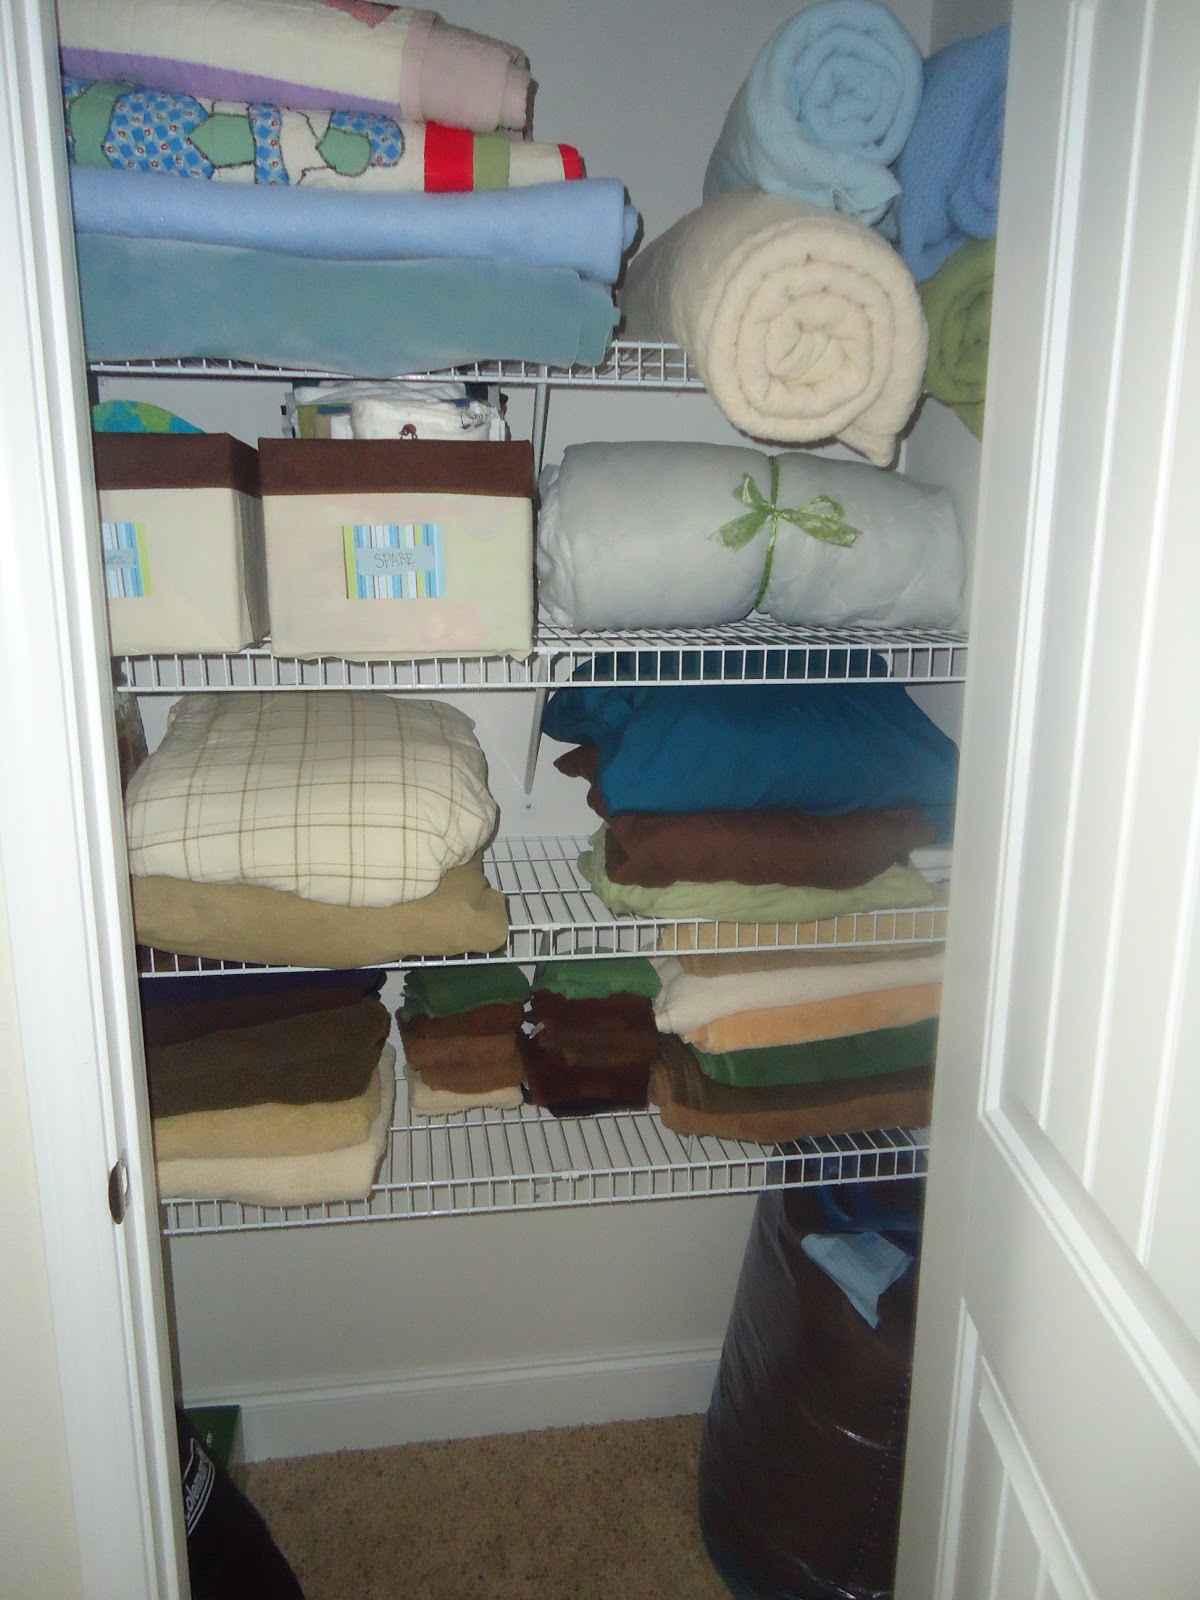 Hereu0027s My Linen Closet. On Shelf #1, We Have Folded Quilts And Rolled  Blankets For The Bed. They Are Easier To Grab When They Are Rolled Because  You Donu0027t ...